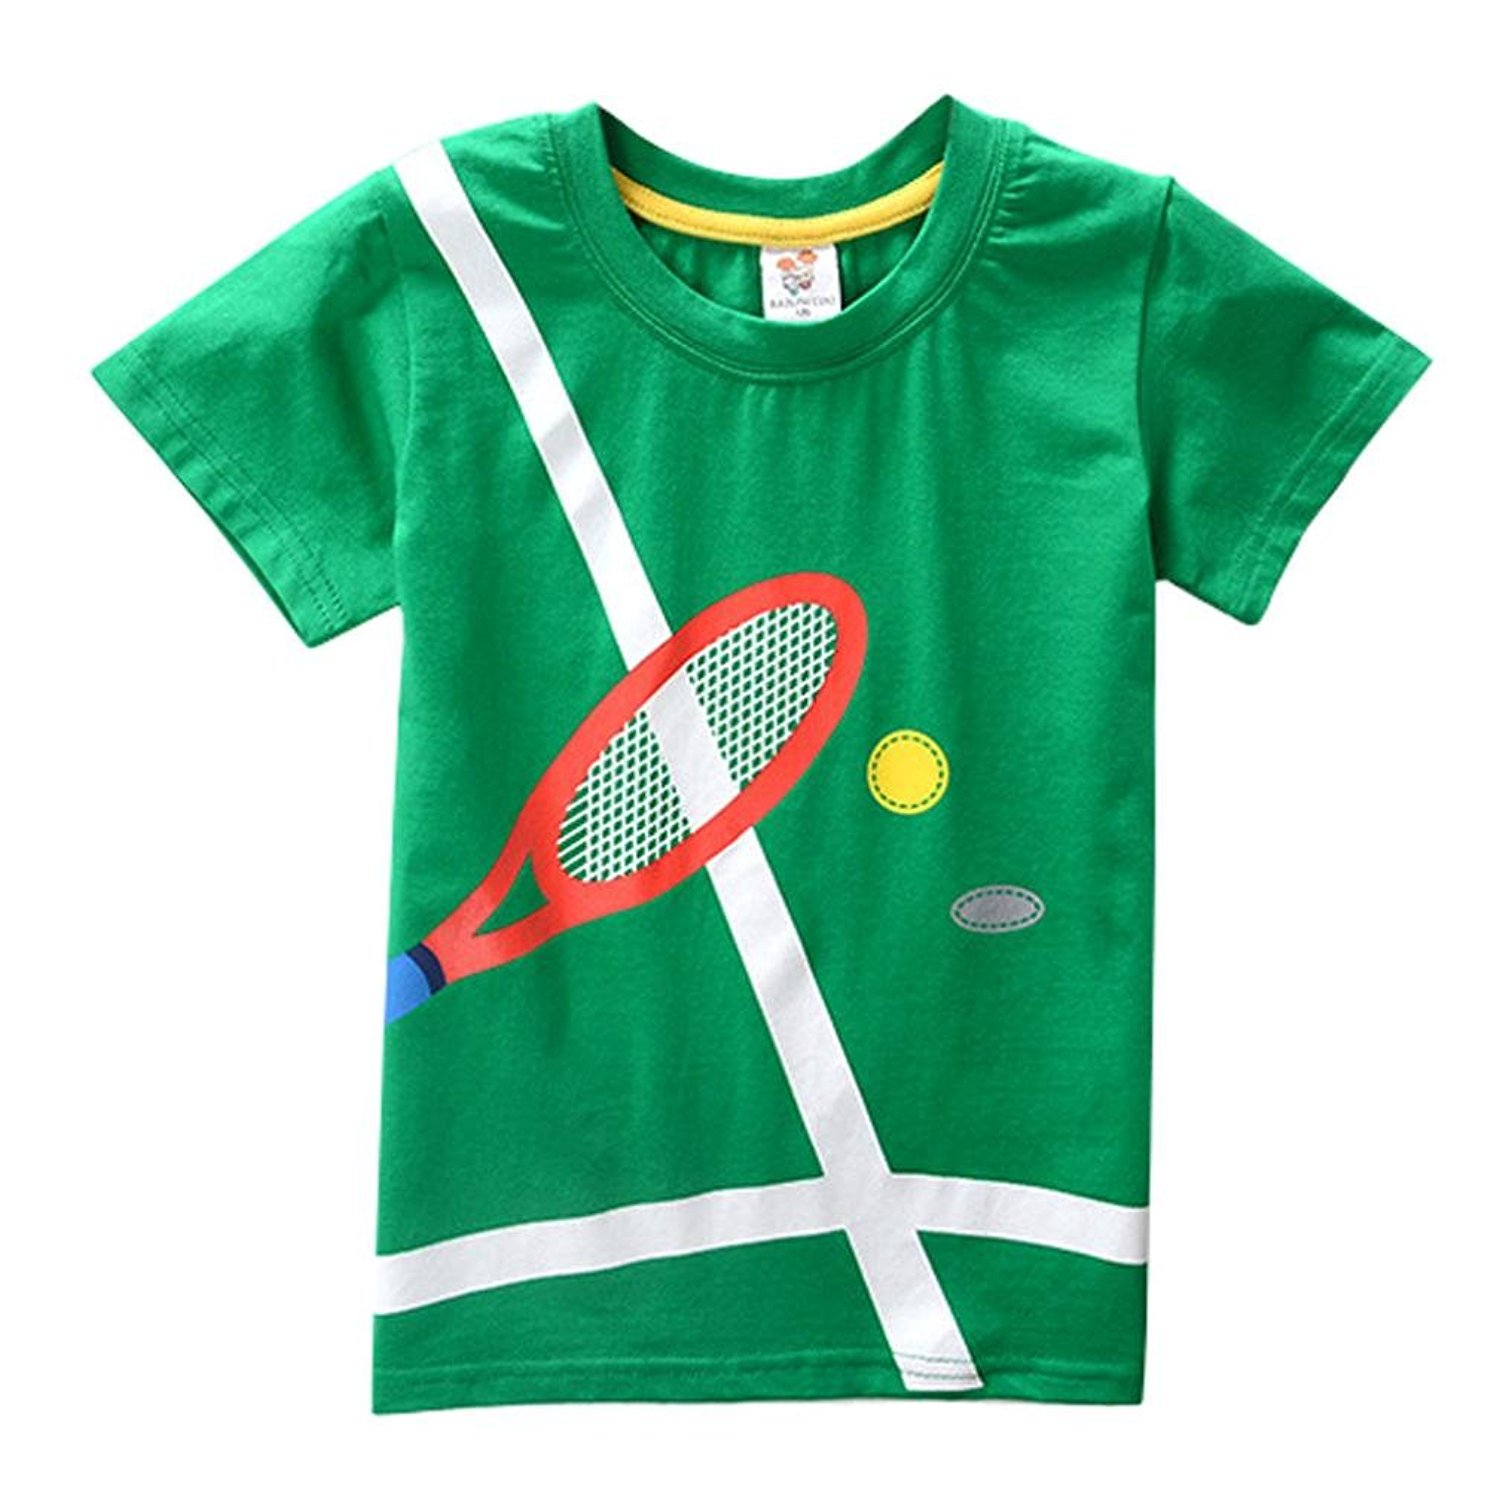 Toddler Kids Baby Boys Girls Clothes Short Sleeve Tops Blous 1-5 Years Pollyhb Baby Boy Girl T-Shirt